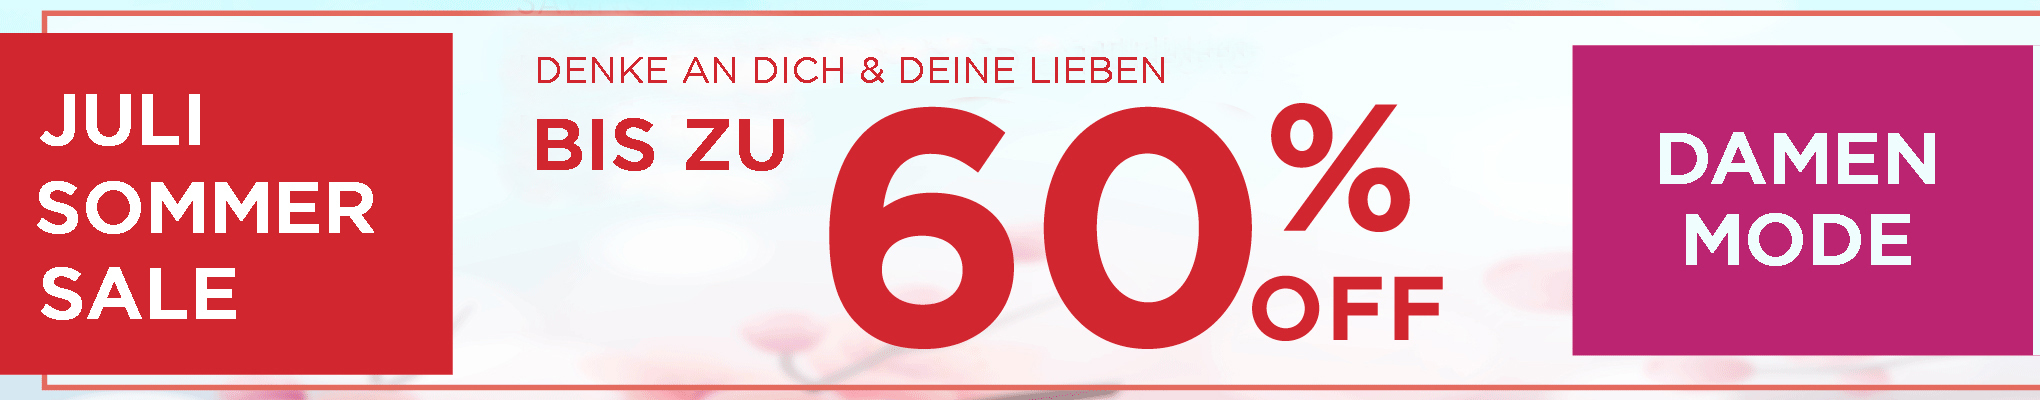 Damen SALE bis zu 60% OFF